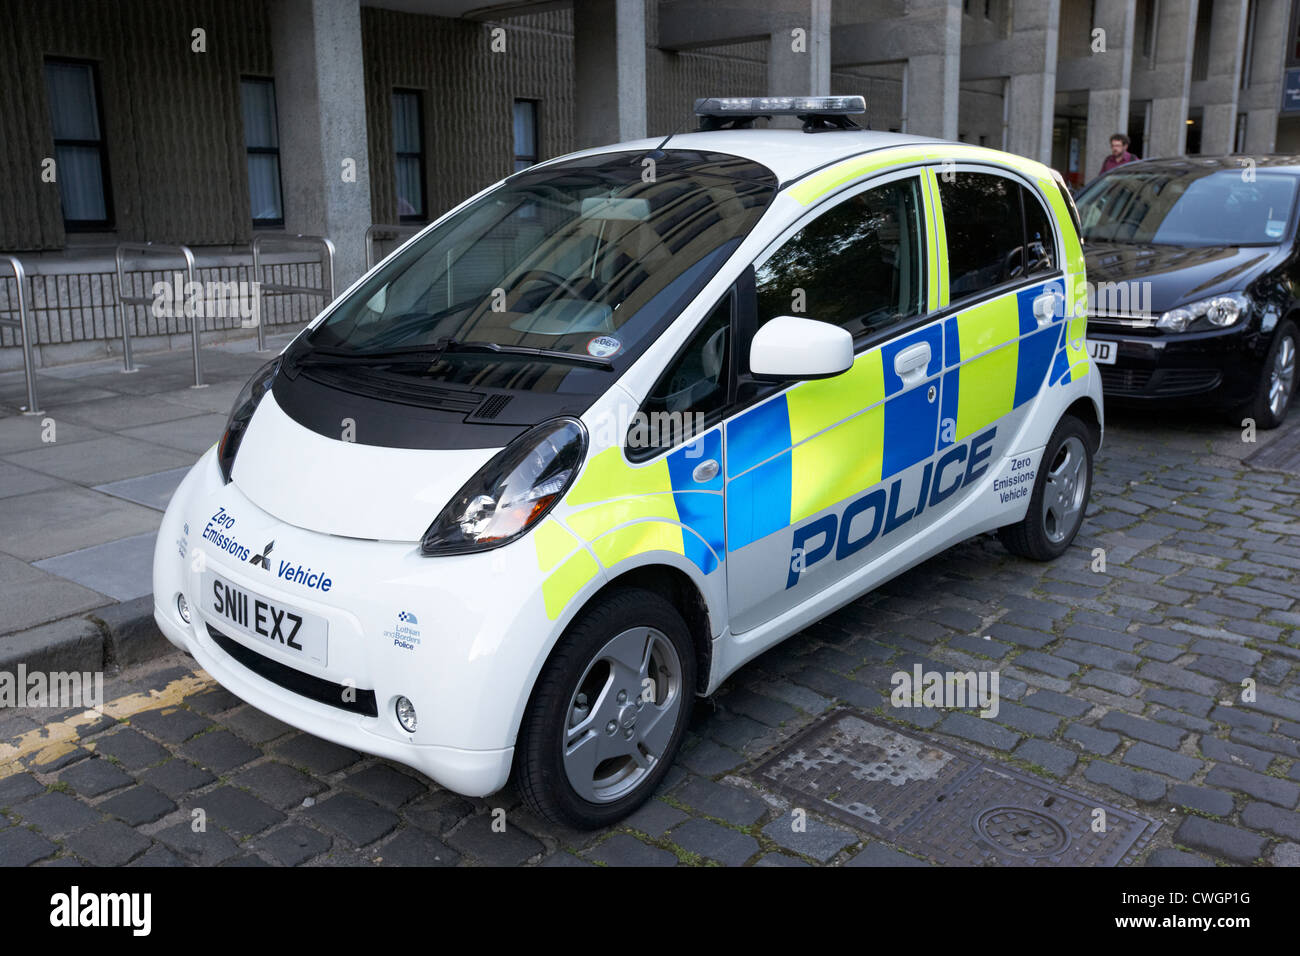 lothian and borders police zero emissions electric vehicle edinburgh, scotland, uk, united kingdom - Stock Image